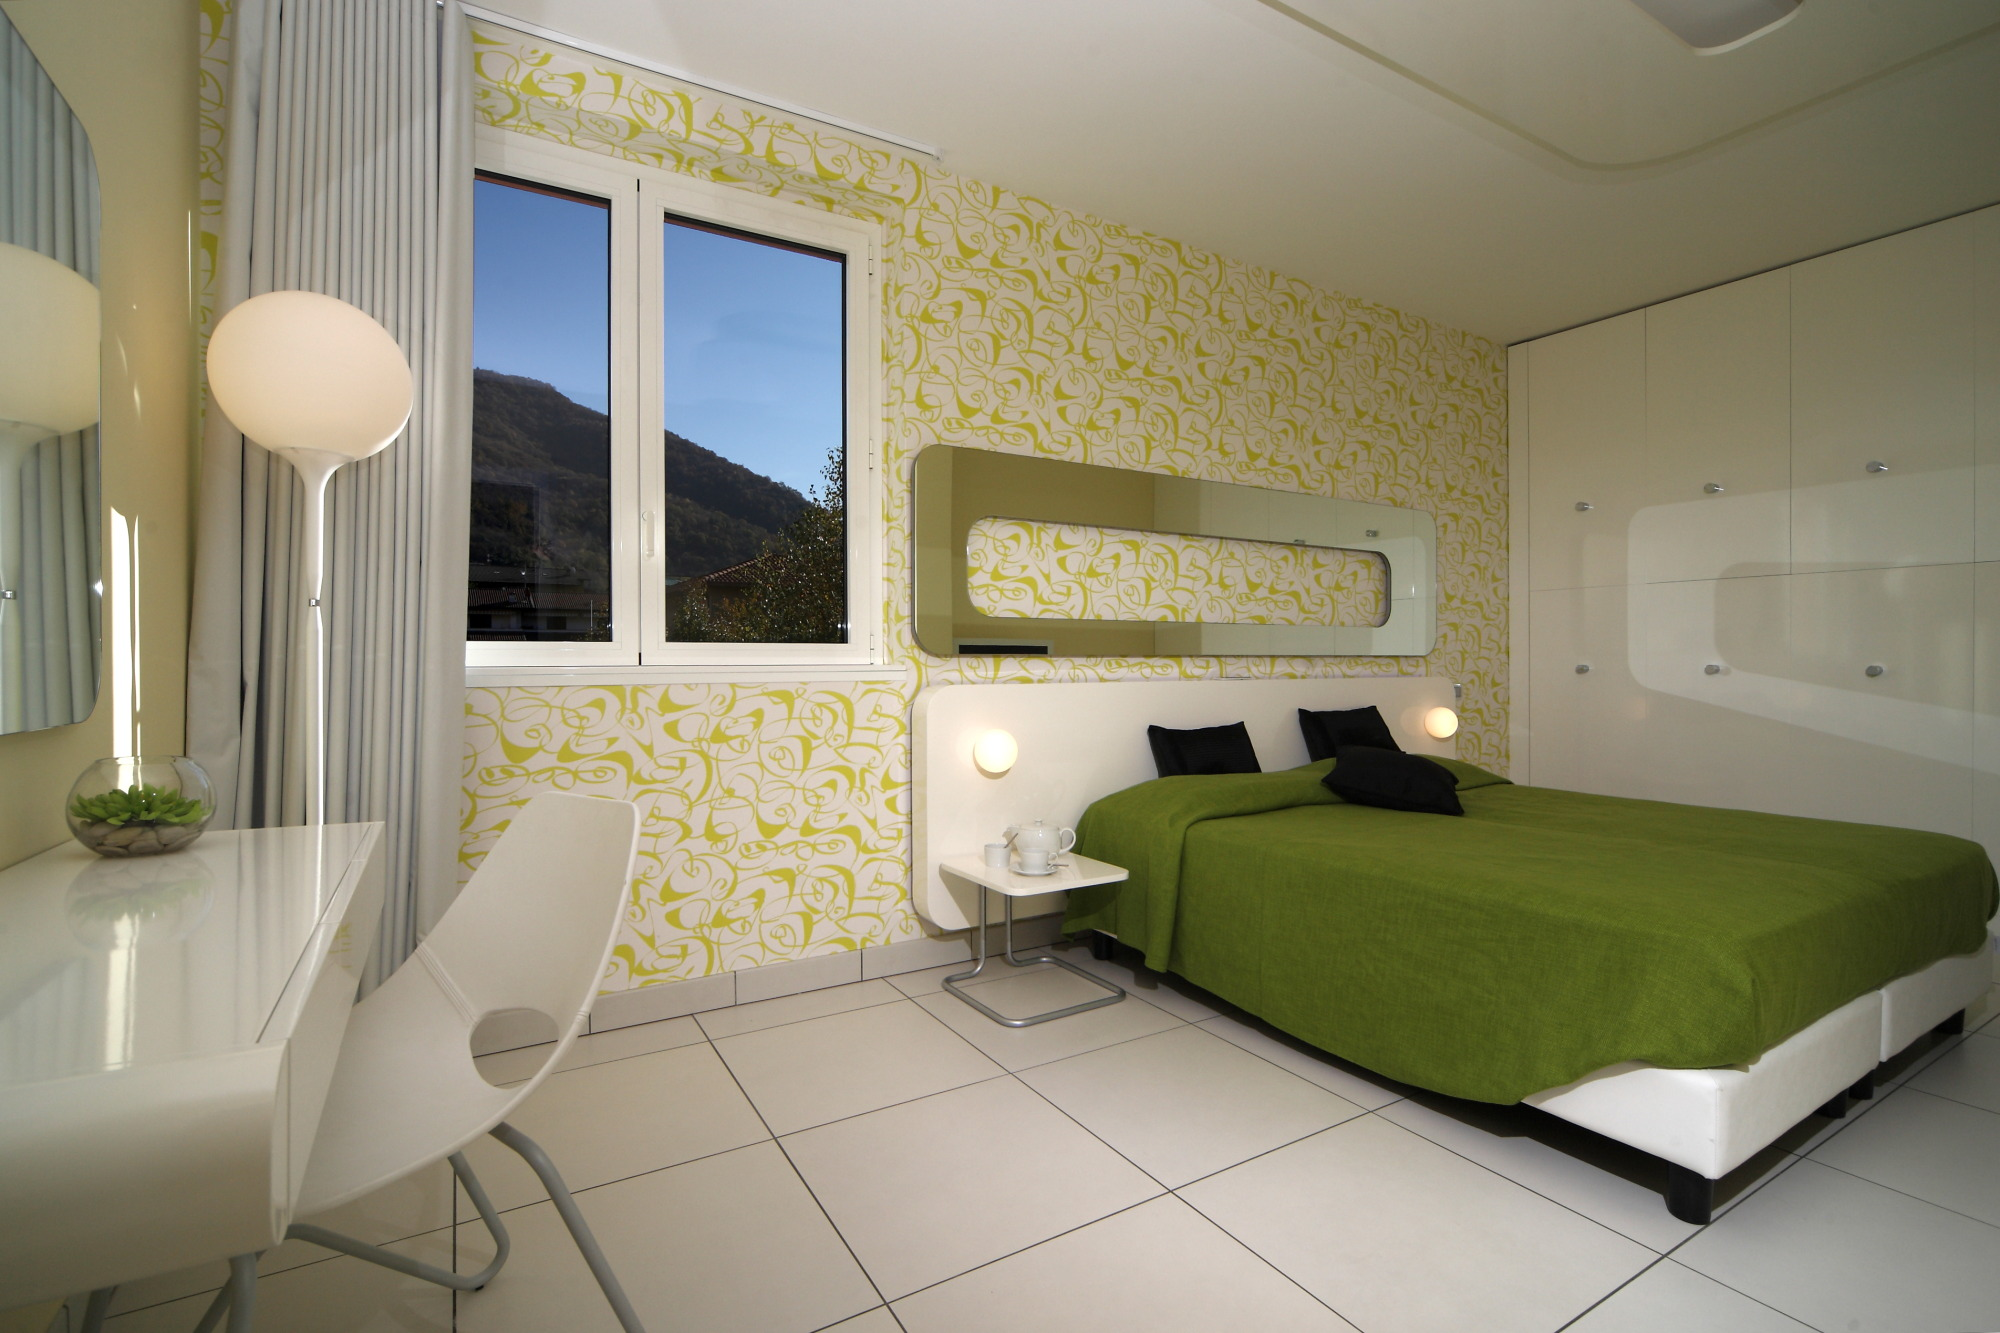 https://www.in-lombardia.it/sites/default/files/accomodation/gallery/105448/32262/camera_da_letto_c101.jpg